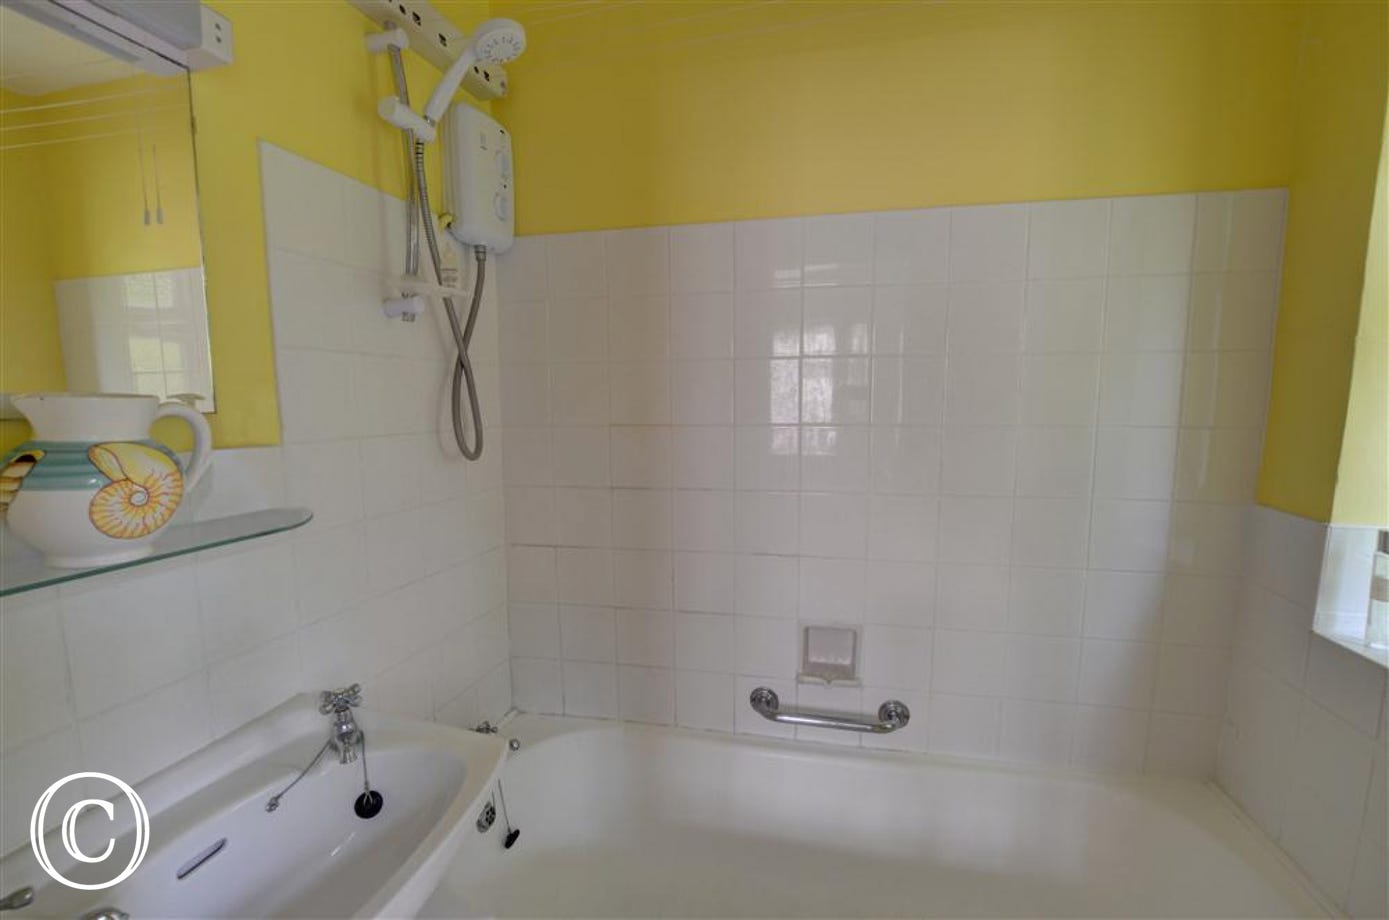 This yellow walled bathroom with white tiles and suite will refresh after a day out to Bury St Edmunds.